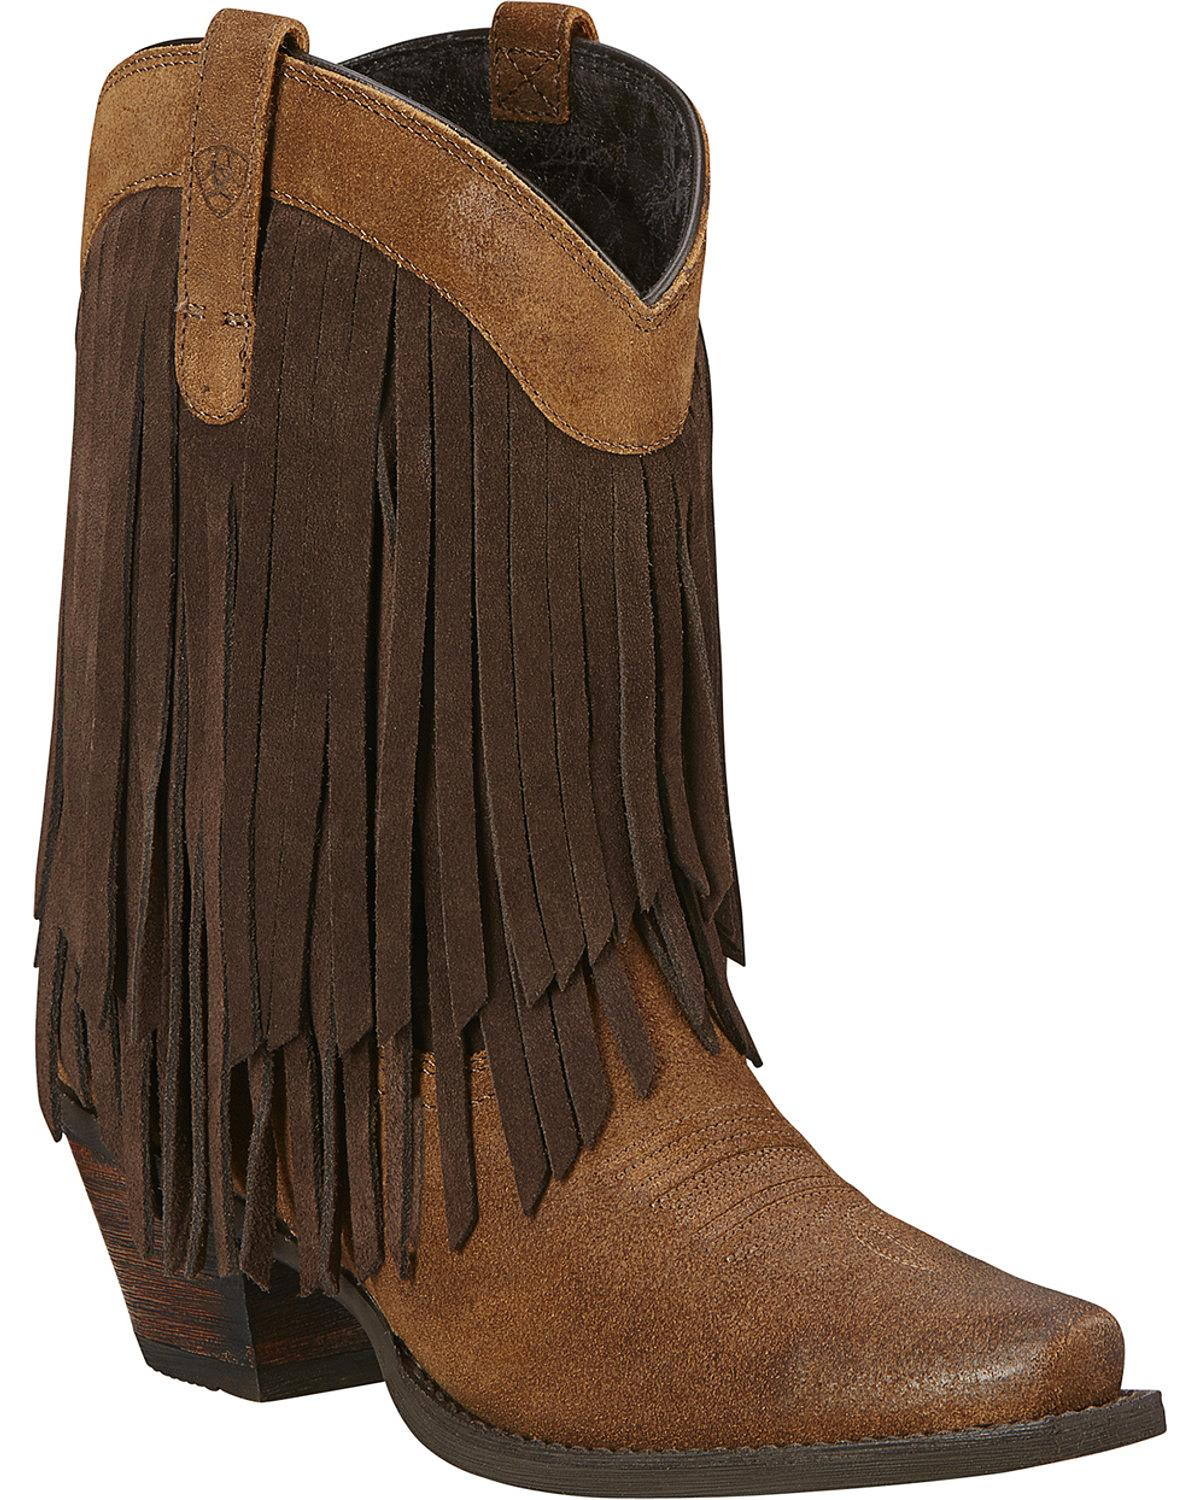 fcaab192935 Ariat Fringe Boots - Usefulresults